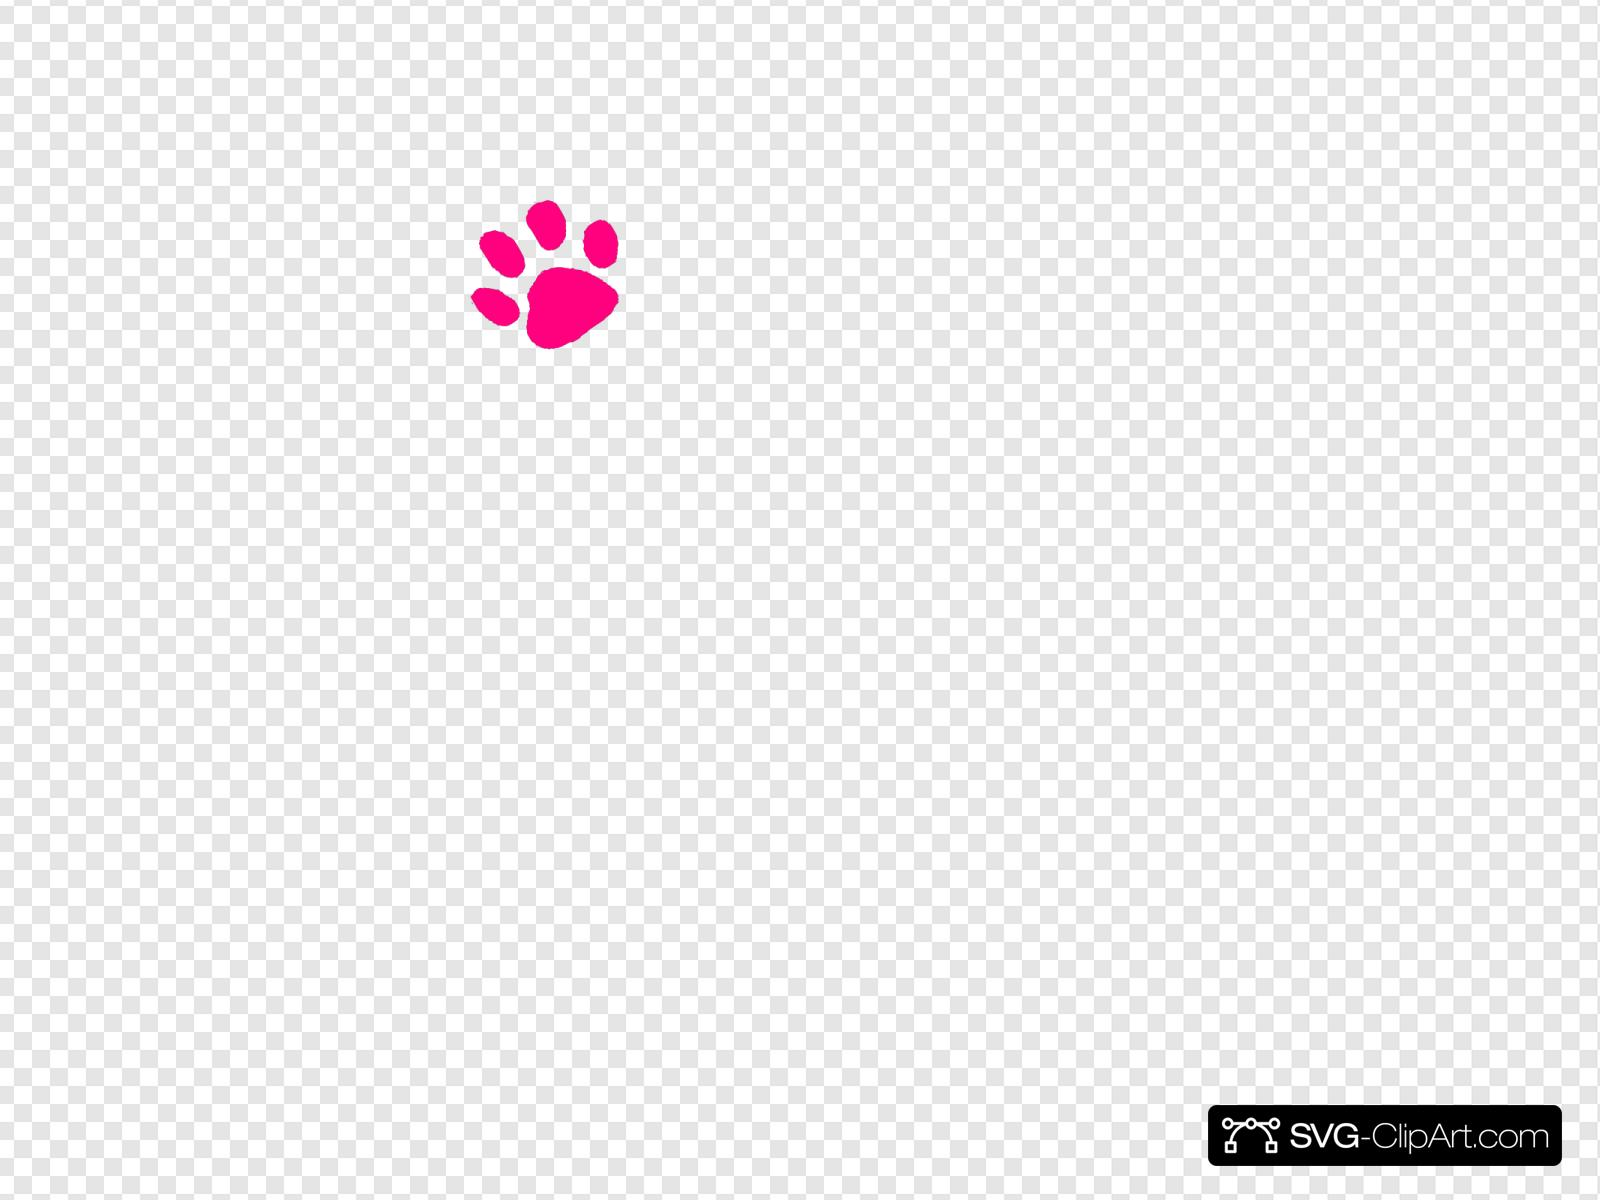 Pink Paw Print Svg Vector Pink Paw Print Clip Art Svg Clipart Try to search more transparent images related to paw print png |. svg clipart